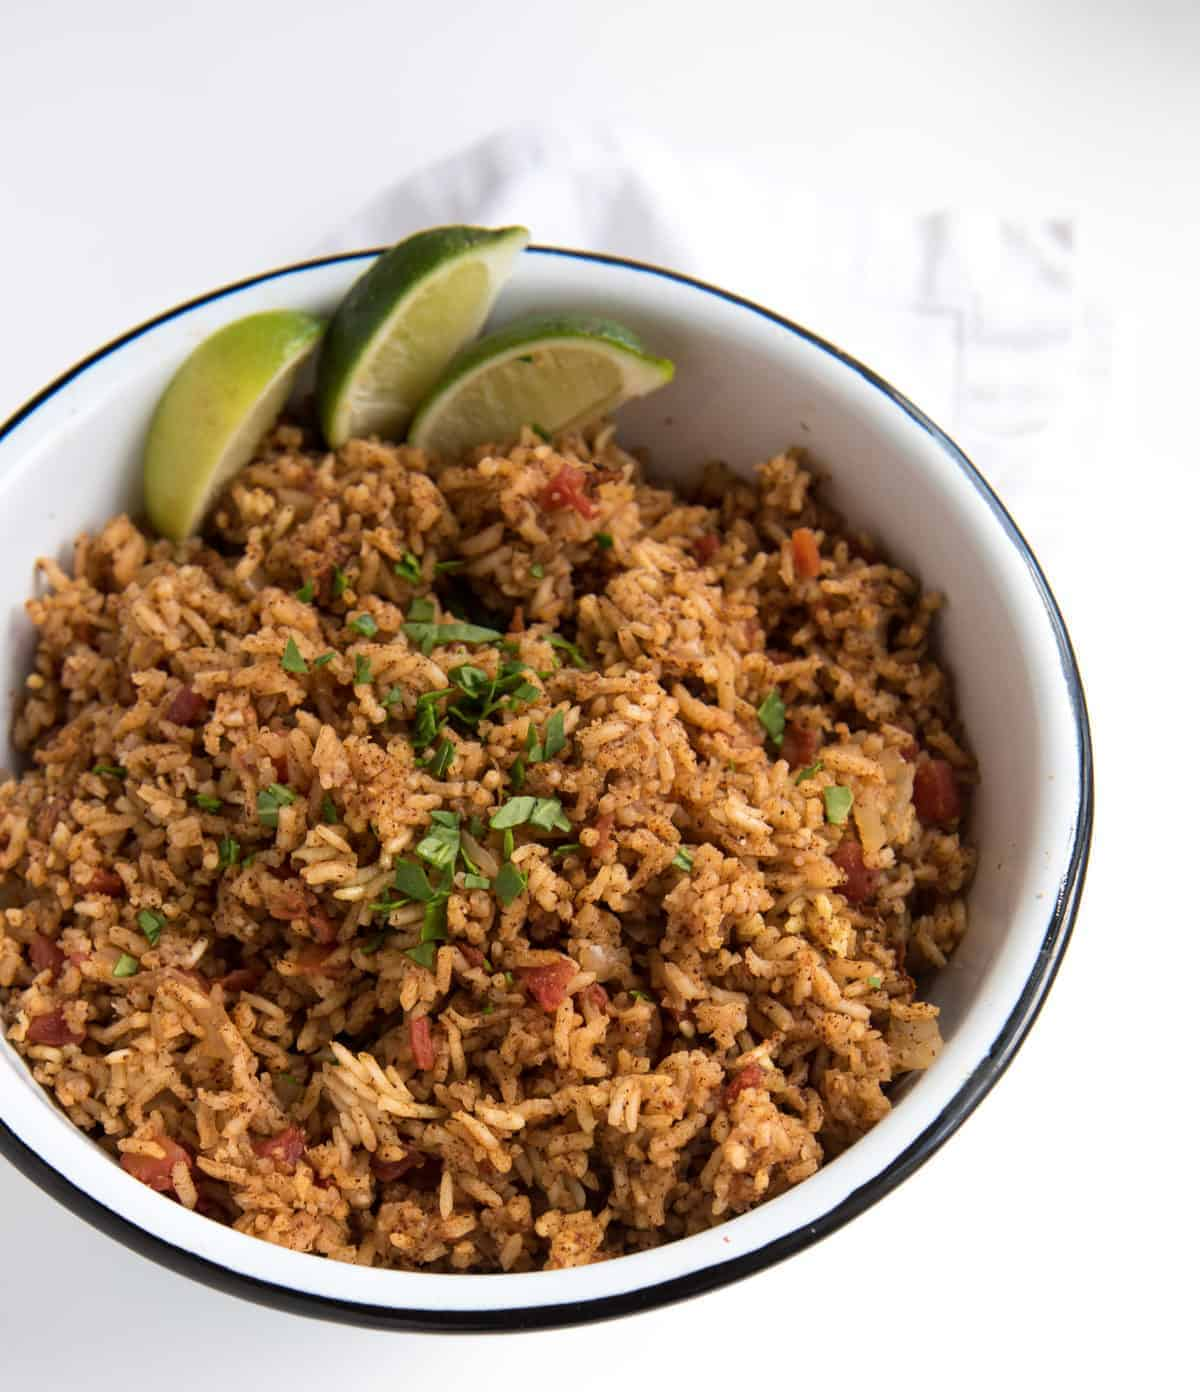 Such an easy & tasty rice cooker recipe! Spanish Rice made with a few simple ingredients (including a can of tomatoes). Just dump, mix, set it & forget it! #ricecooker #ricerecipes